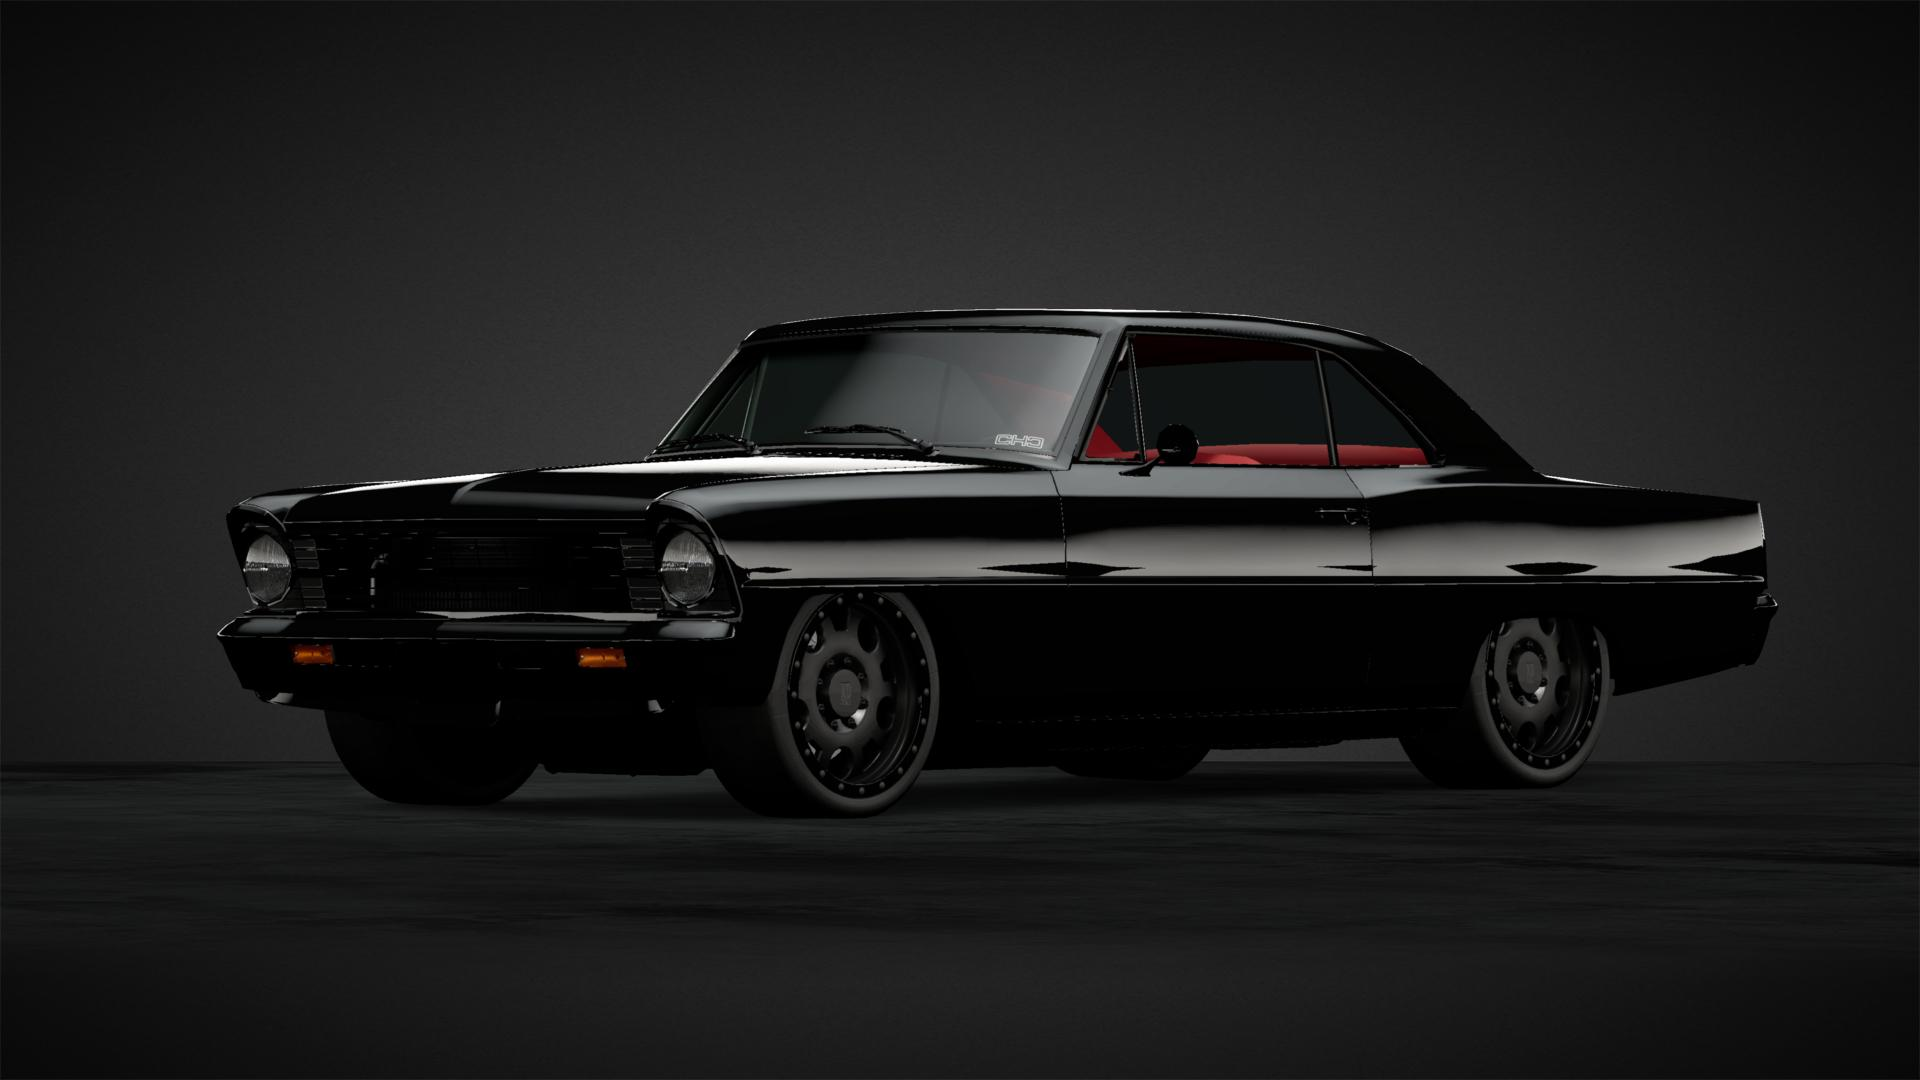 Blacked Out Nova Car Livery By Dirtylittlebeach Community Gran